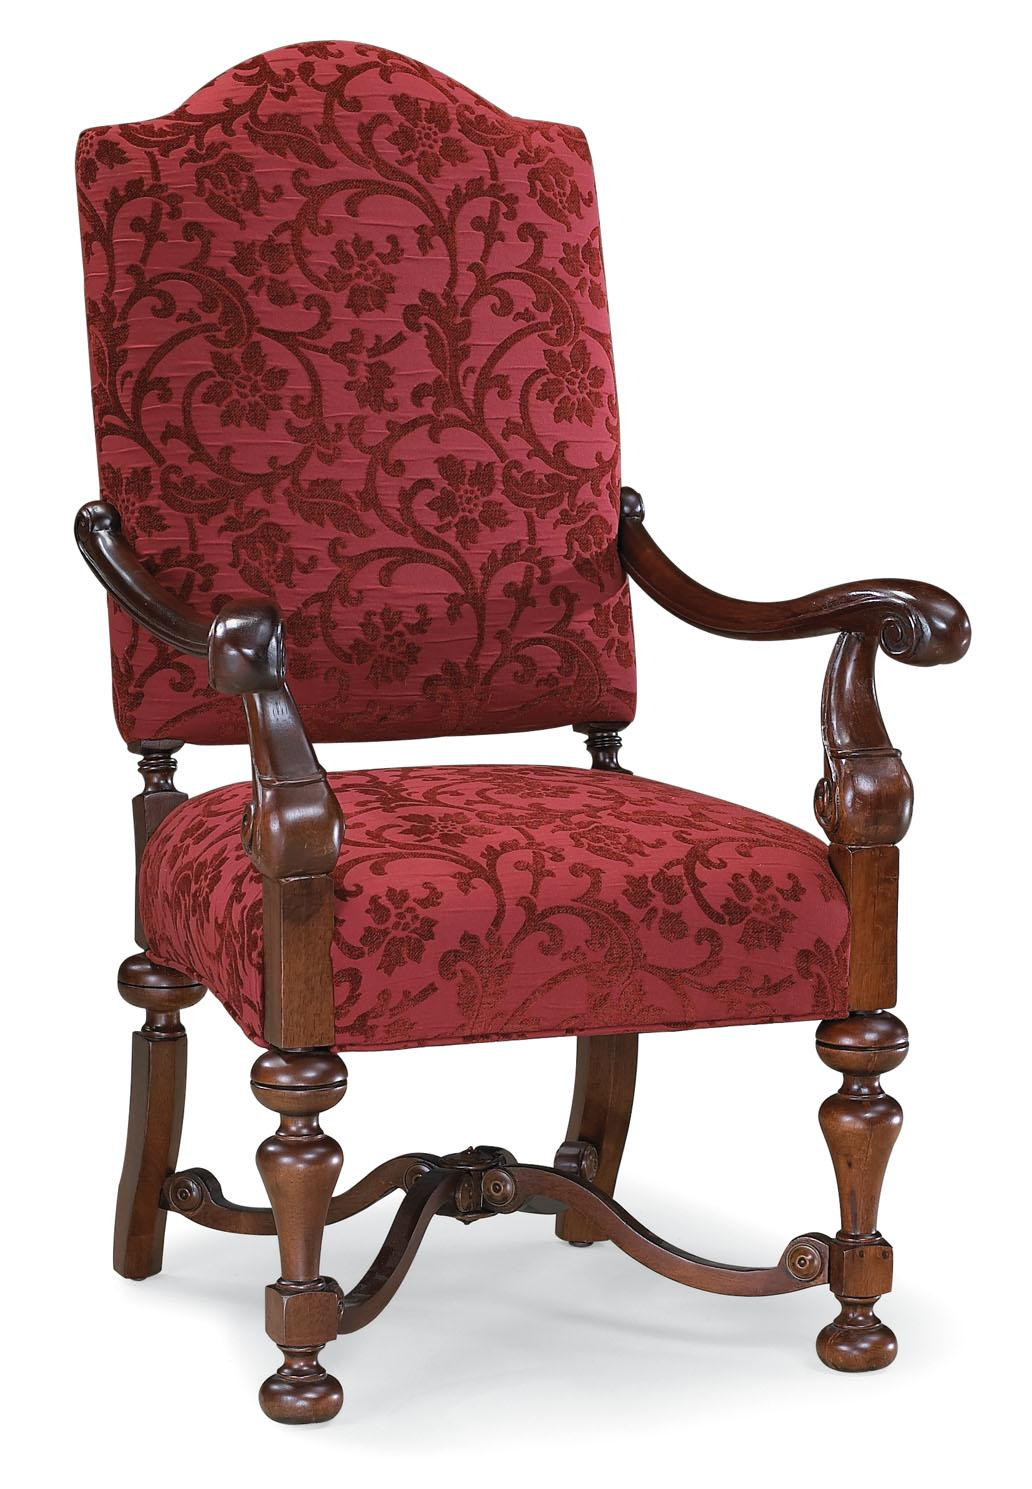 Fairfield Chairs Exposed Wood Chair - Item Number: 5456-01